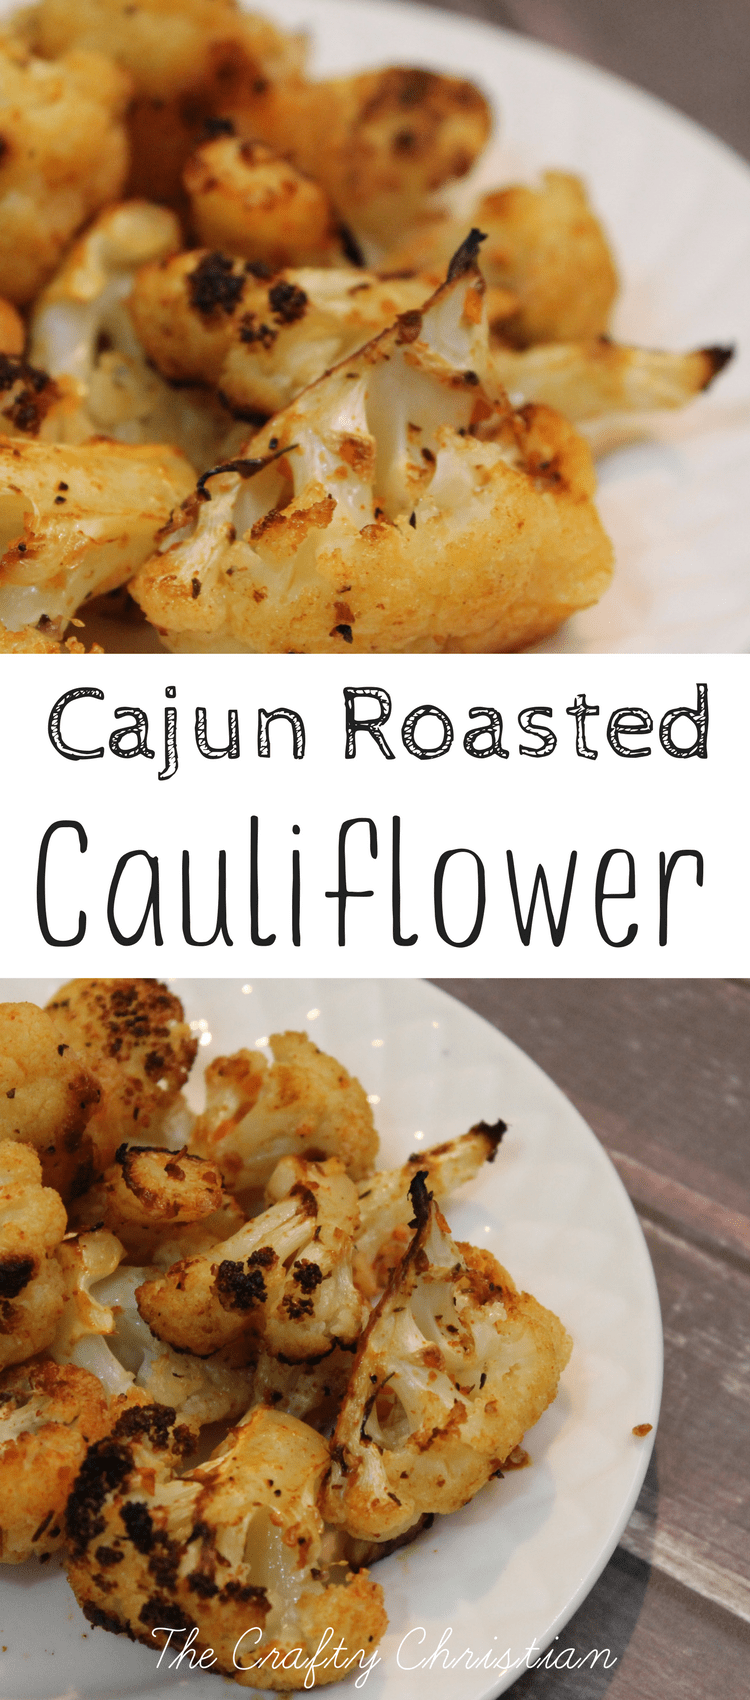 Cauliflower has great health benefits, but it doesn't always taste good.  This cajun roasted cauliflower recipe is easy and delicious; give it a try!